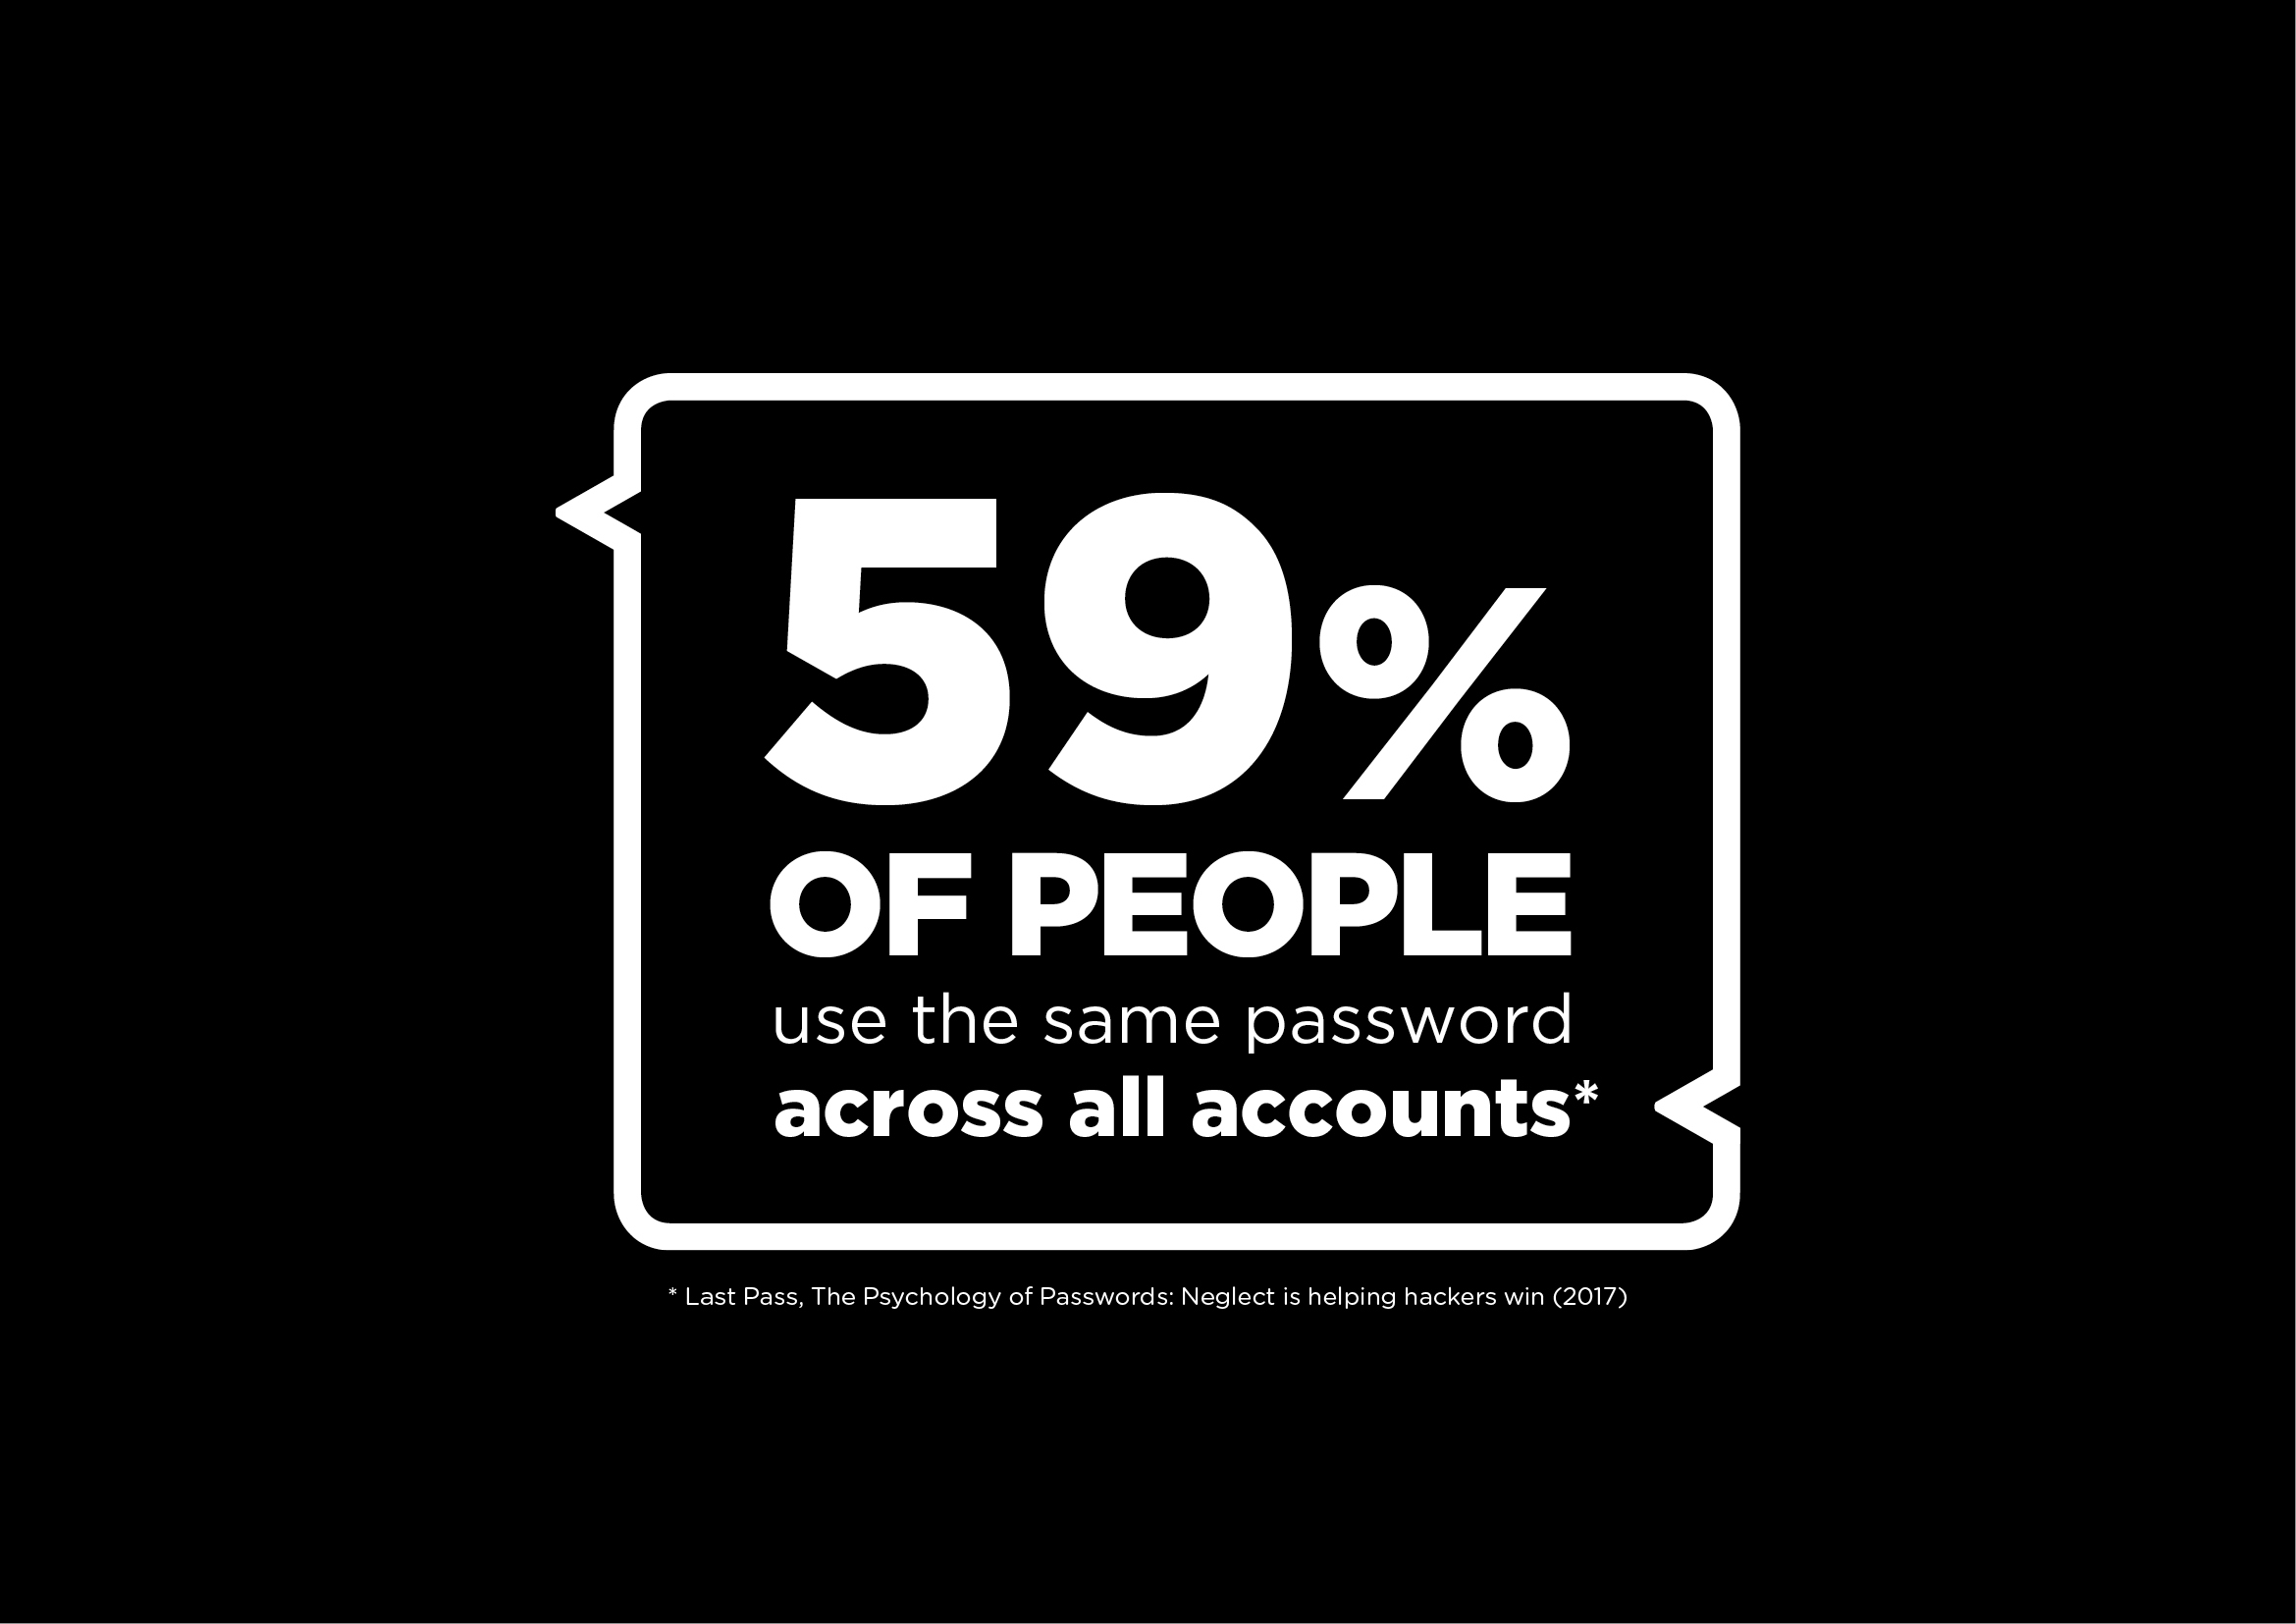 59% of peope use the same password across all accounts